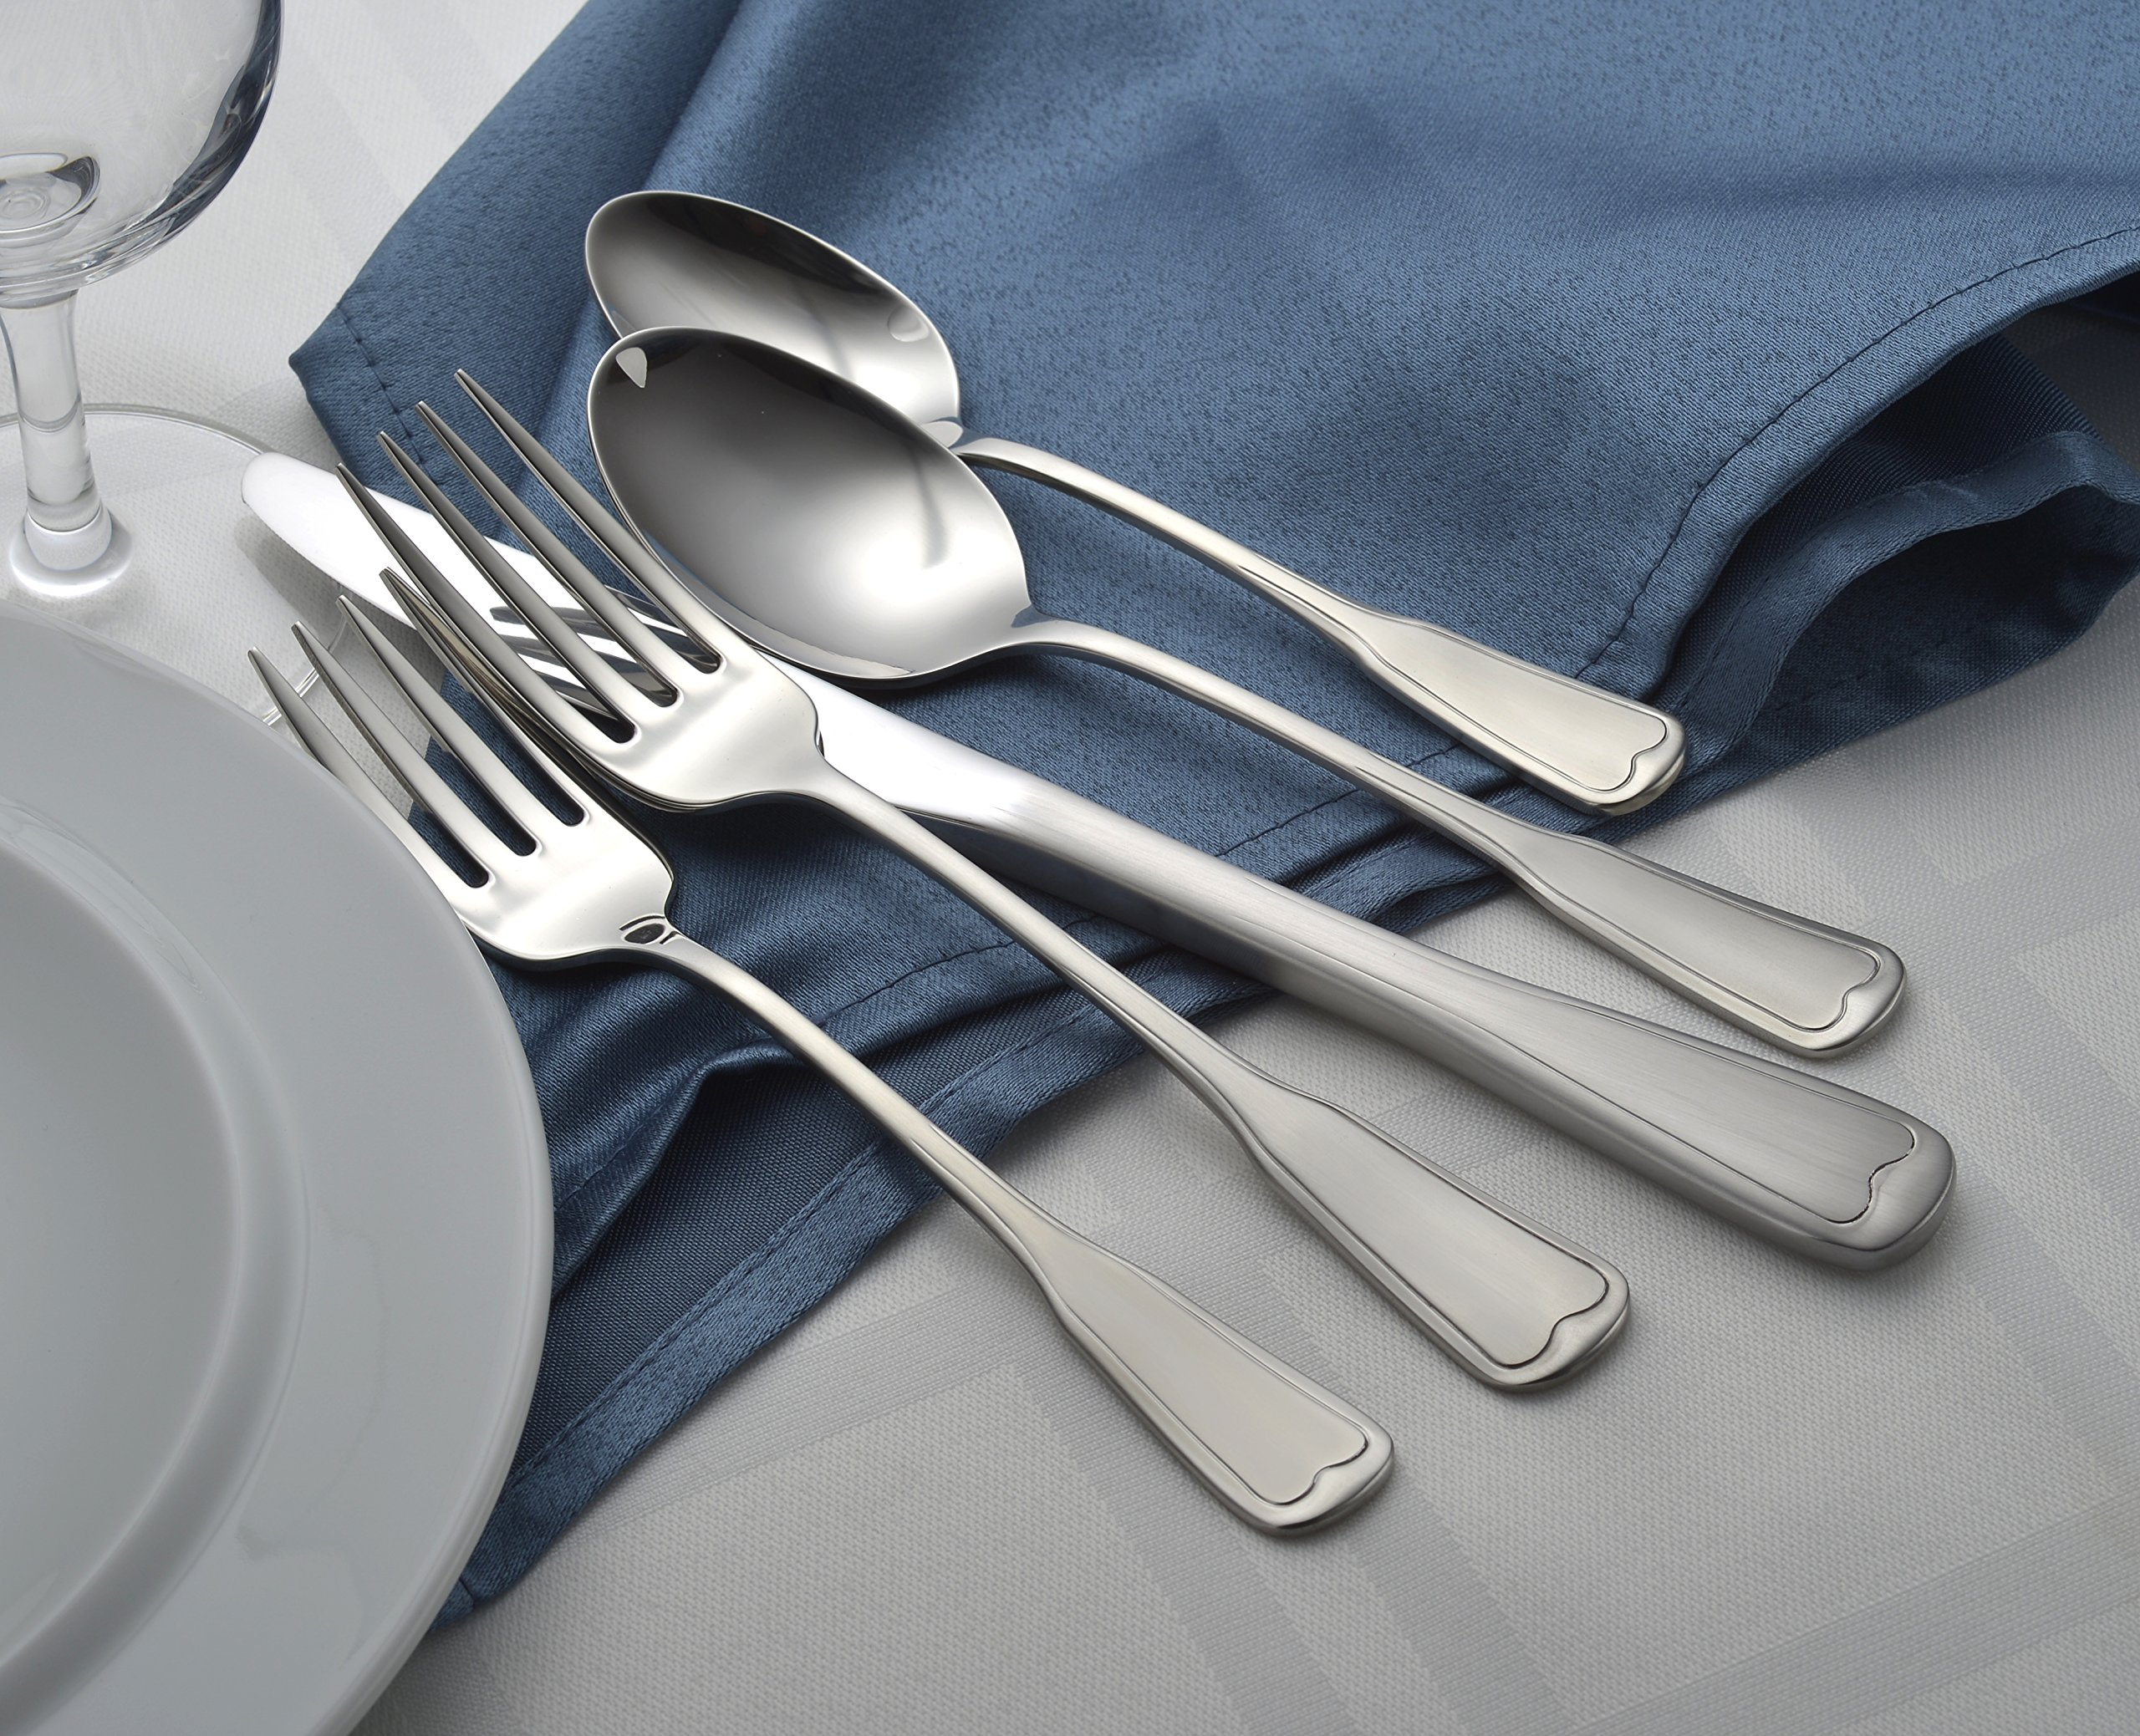 Liberty Tabletop Satin Richmond 20 Piece Flatware Set service for 4 stainless steel 18/10 Made in USA by Liberty Tabletop (Image #6)